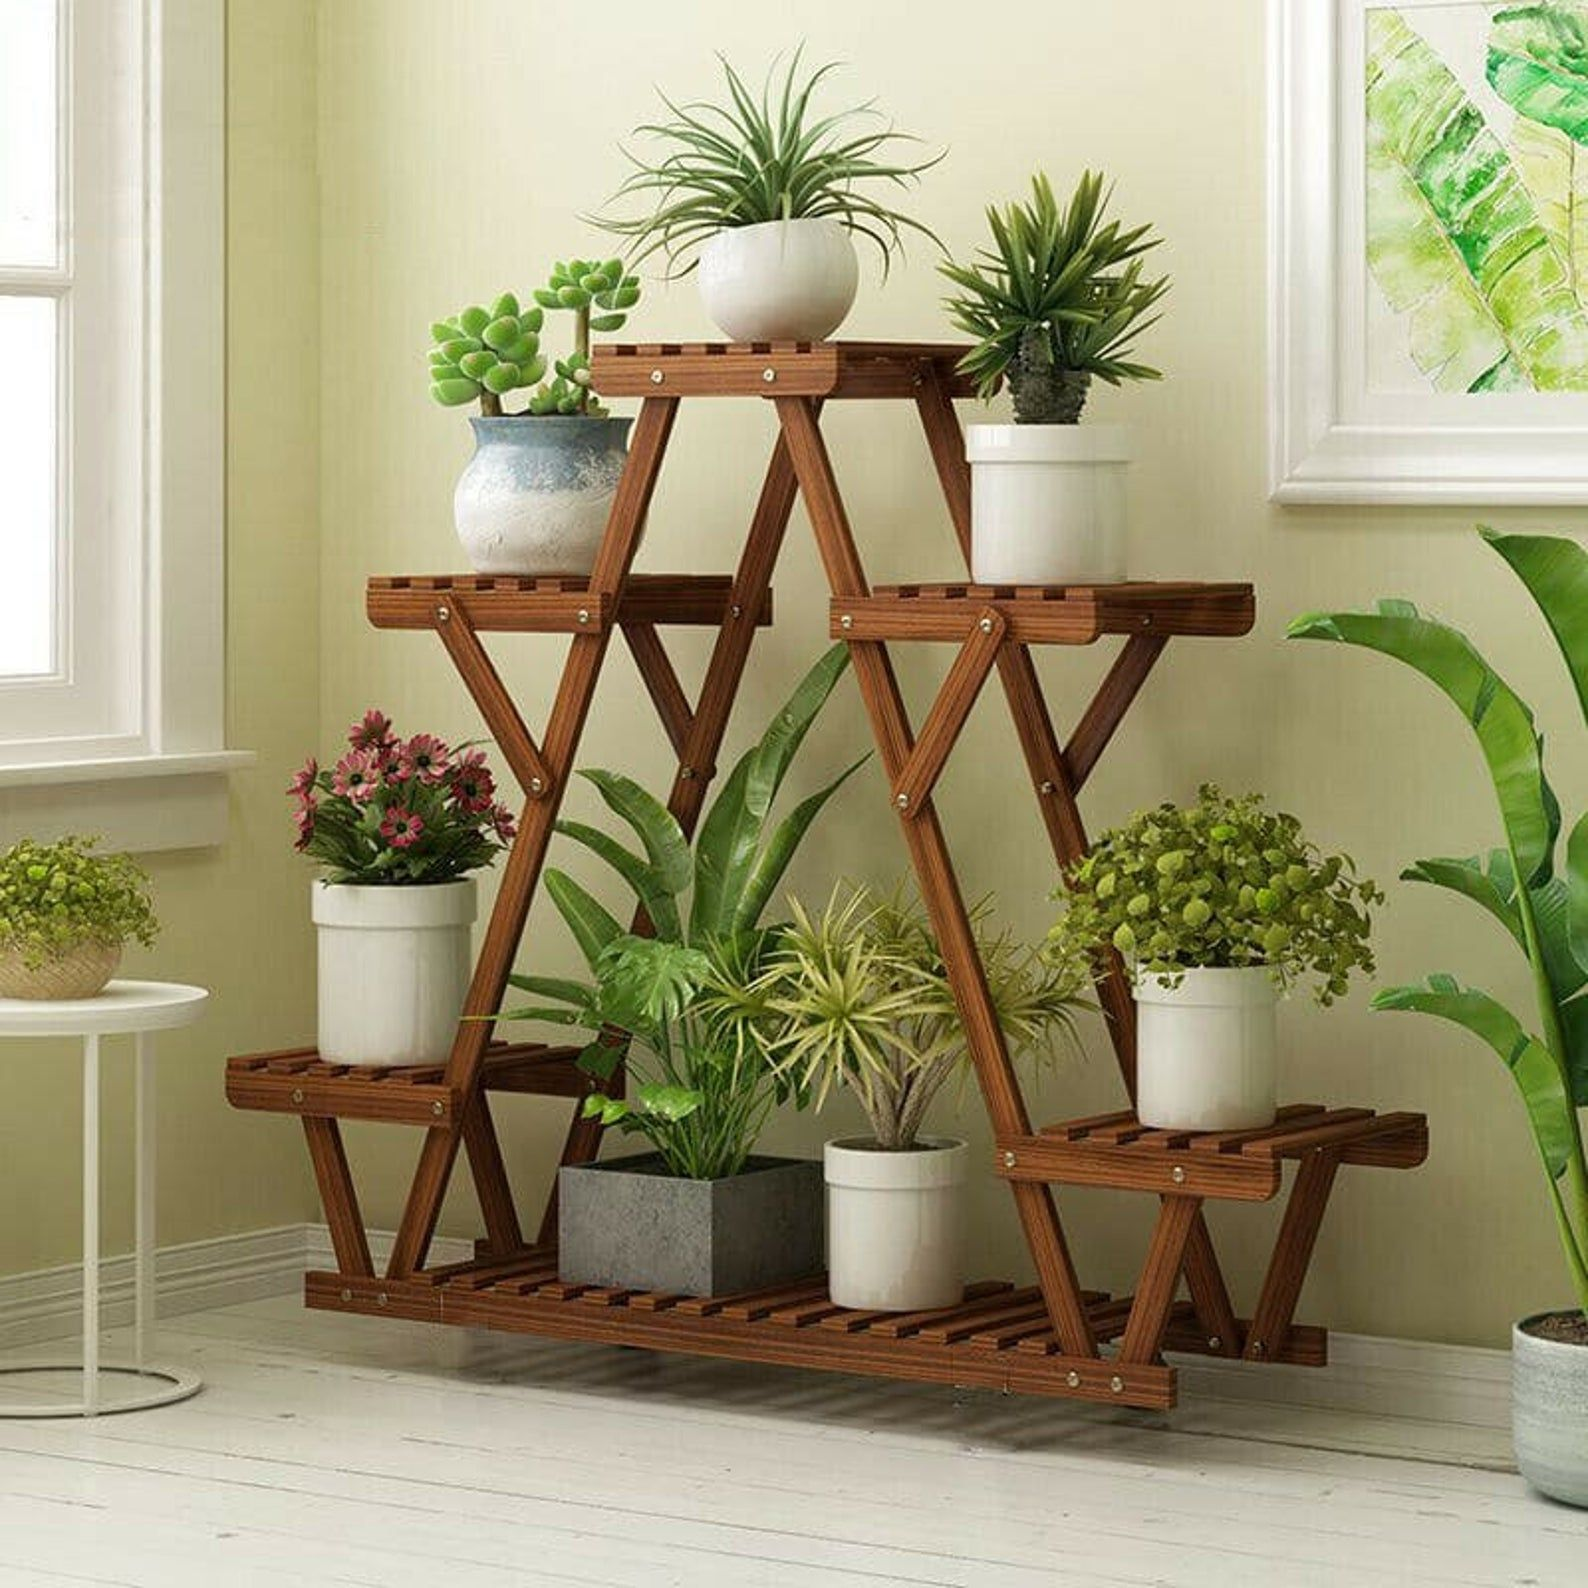 Wood Plant Stand Indoor Outdoor Carbonized Triangle 6 Tiered Corner Plant Rack -23inches -   19 diy Interieur plants ideas